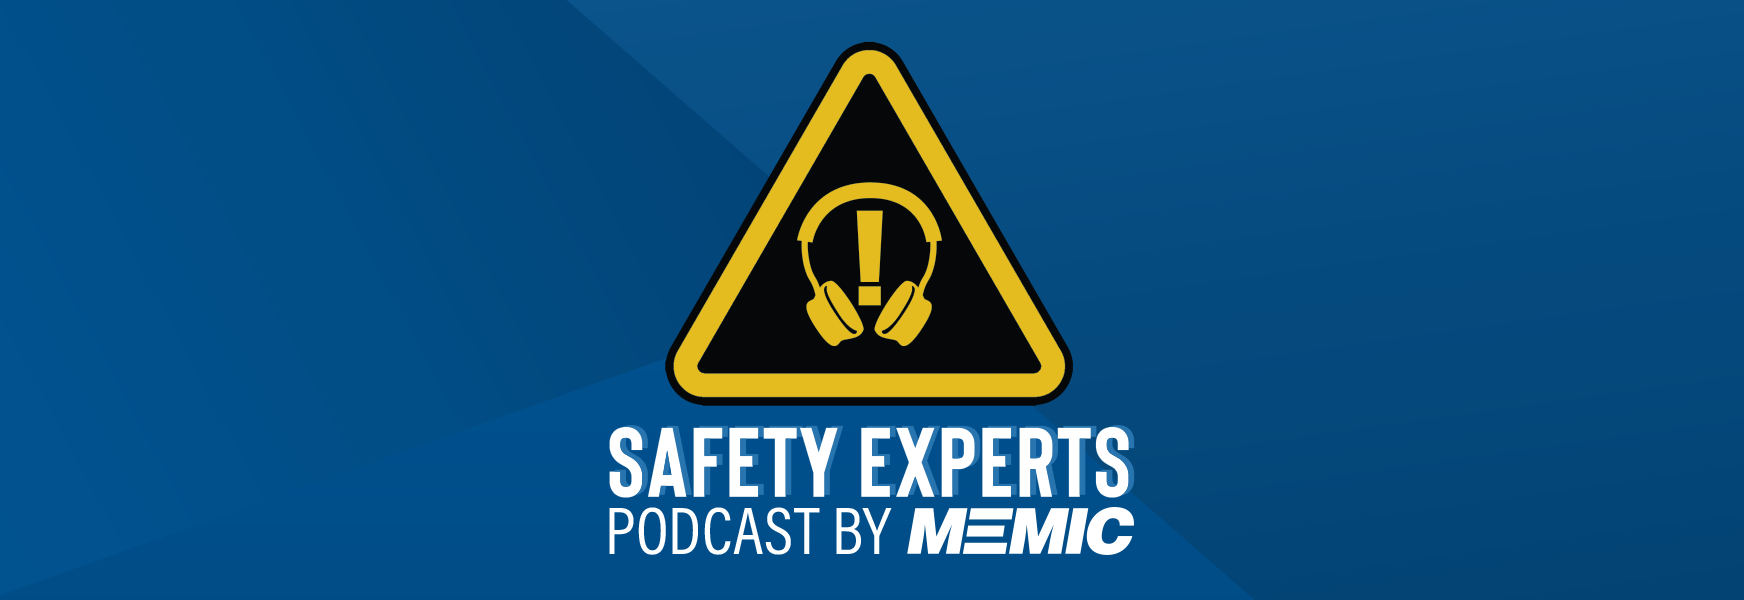 Safety Experts Podcast by MEMIC